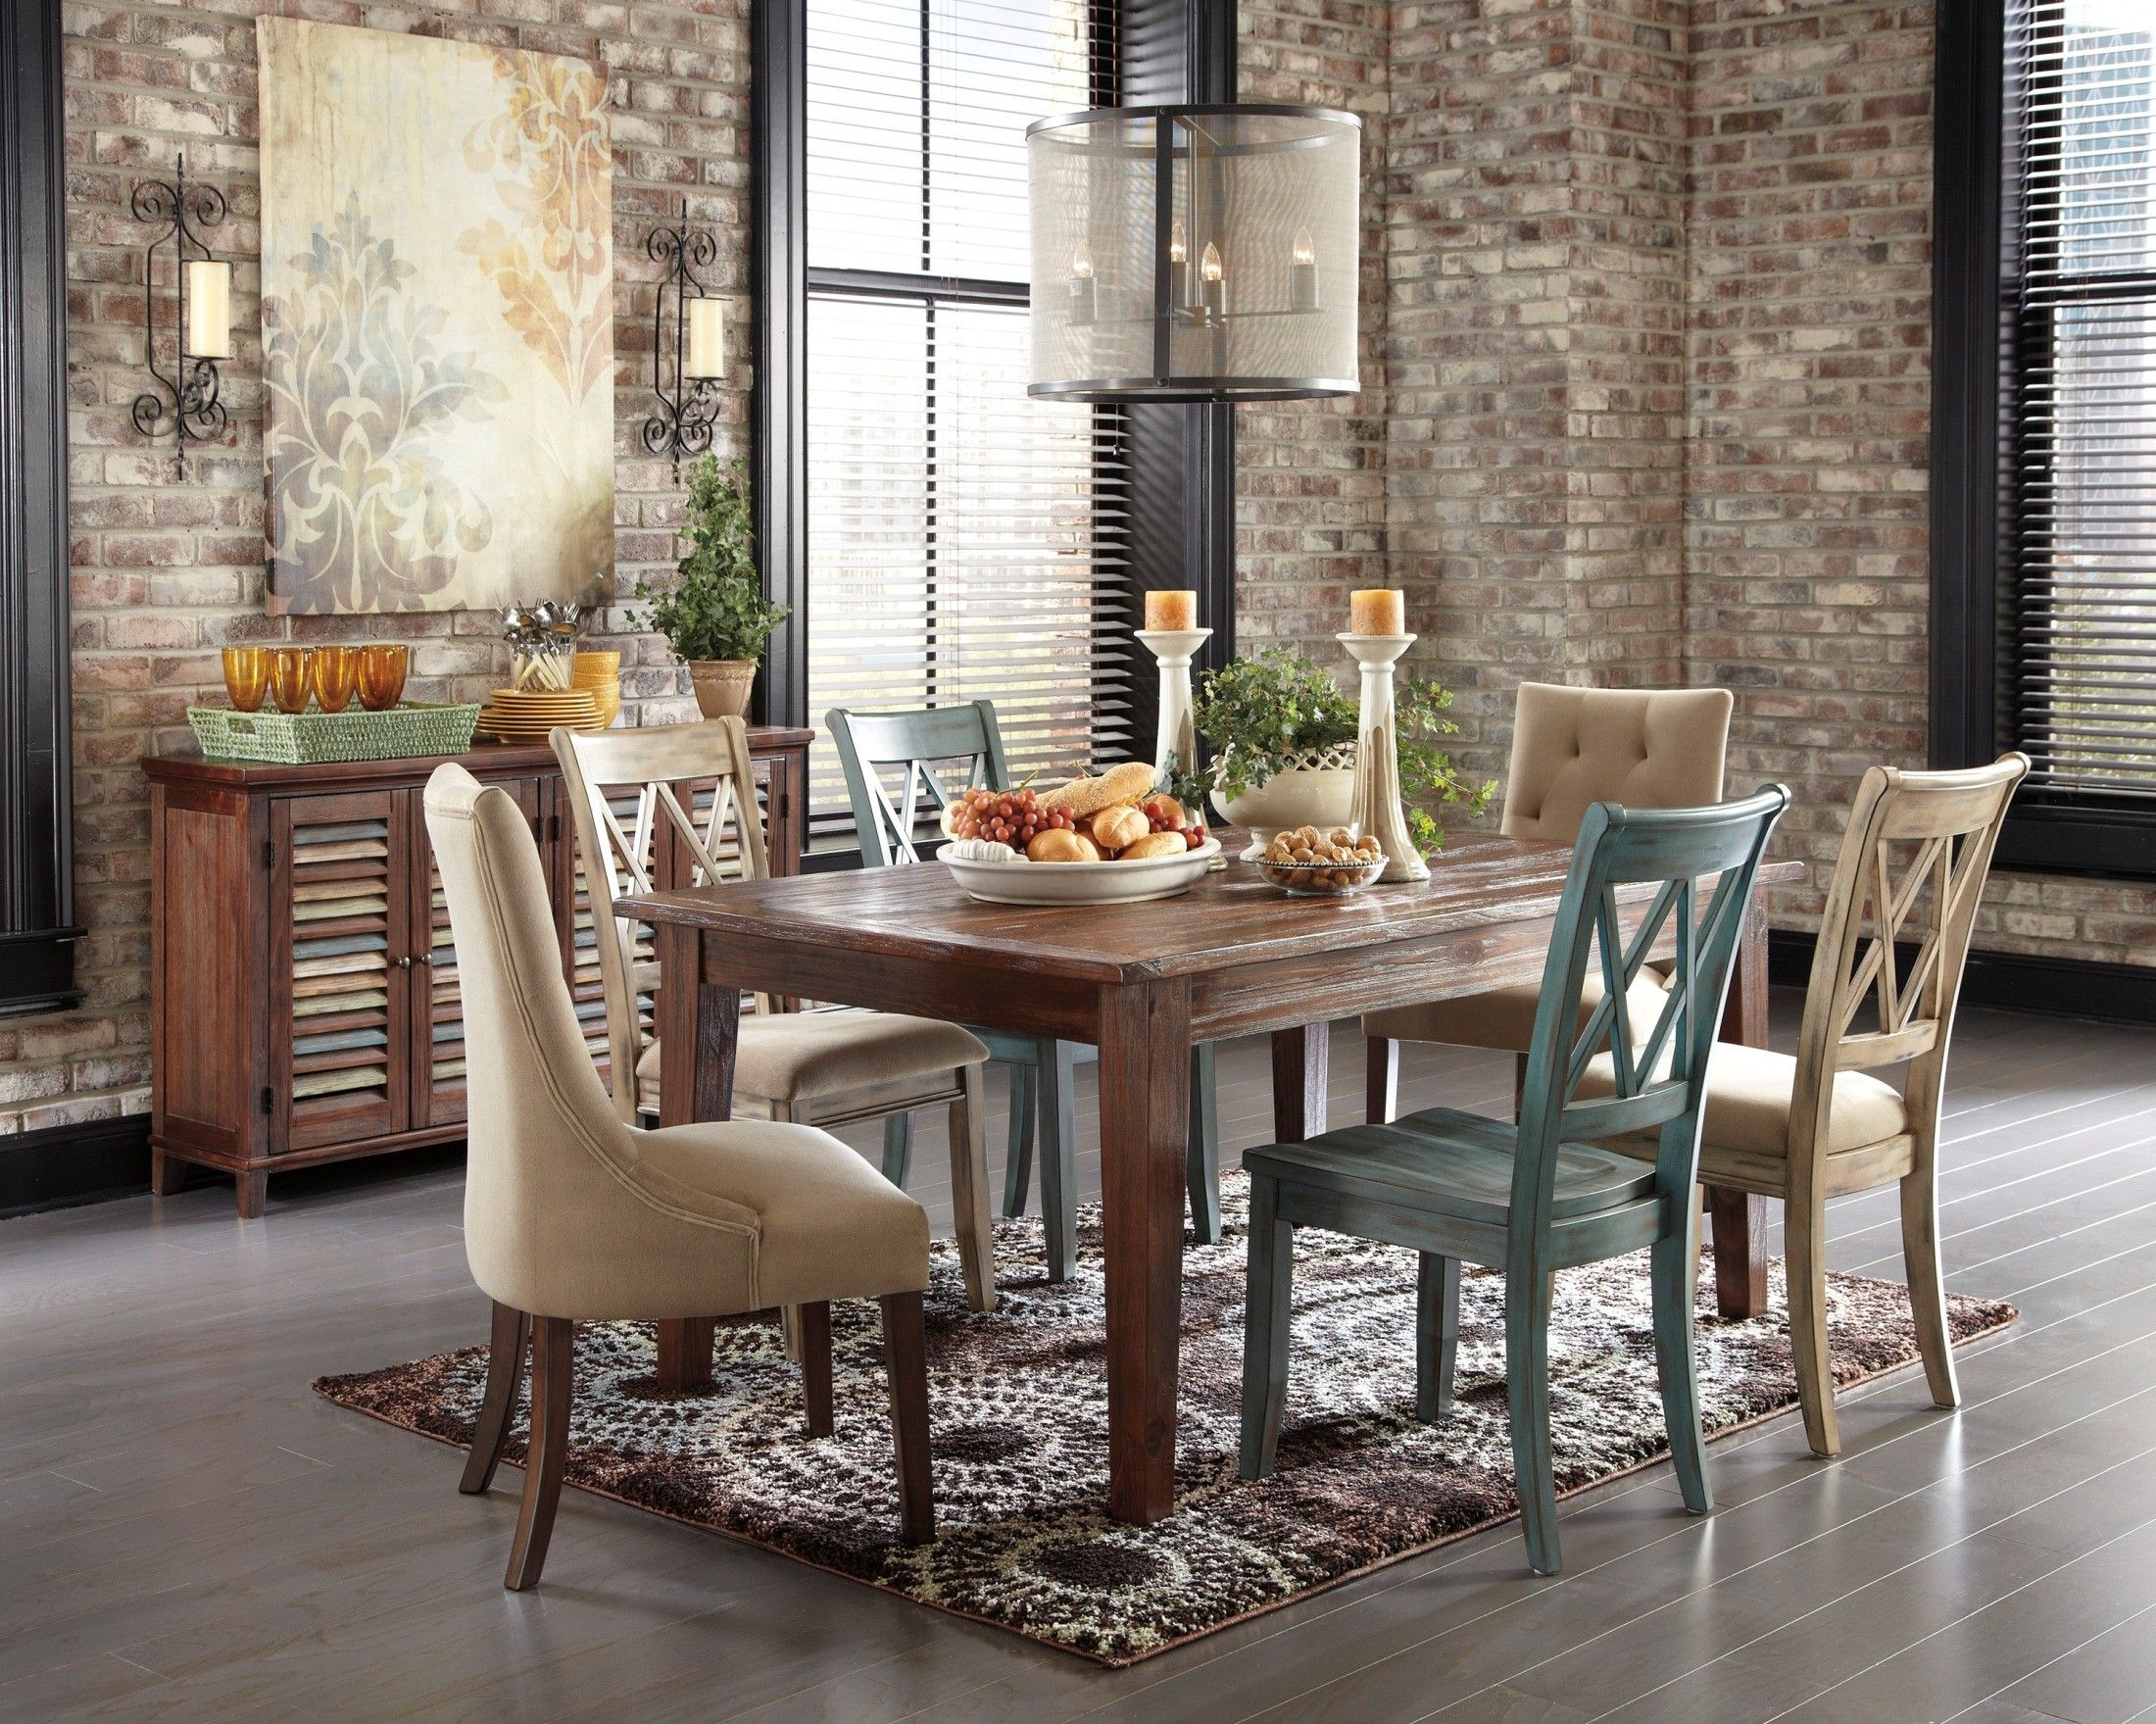 Superior +15 Best Luxurious And Modern Dining Room Design For 2017